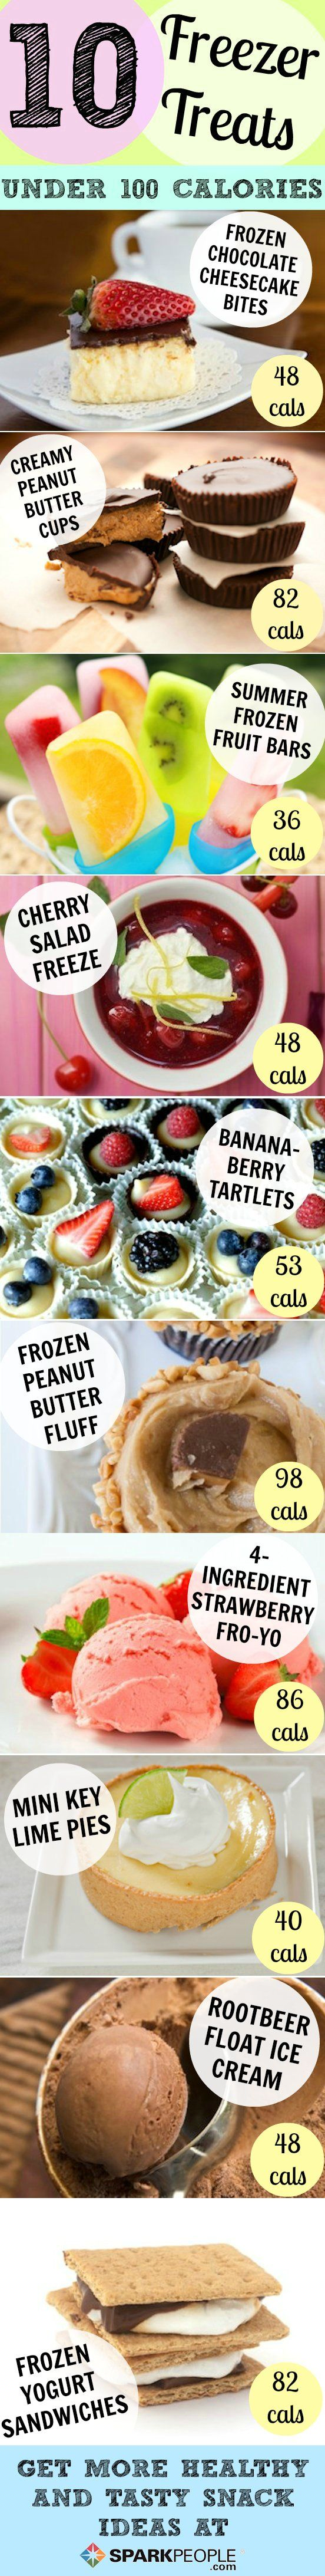 Save hundreds of calories (and plenty of dollars, too) by making your own freezer treats at home. All under 100 calories! | via @SparkPeople #dessert #icecream #lowcal